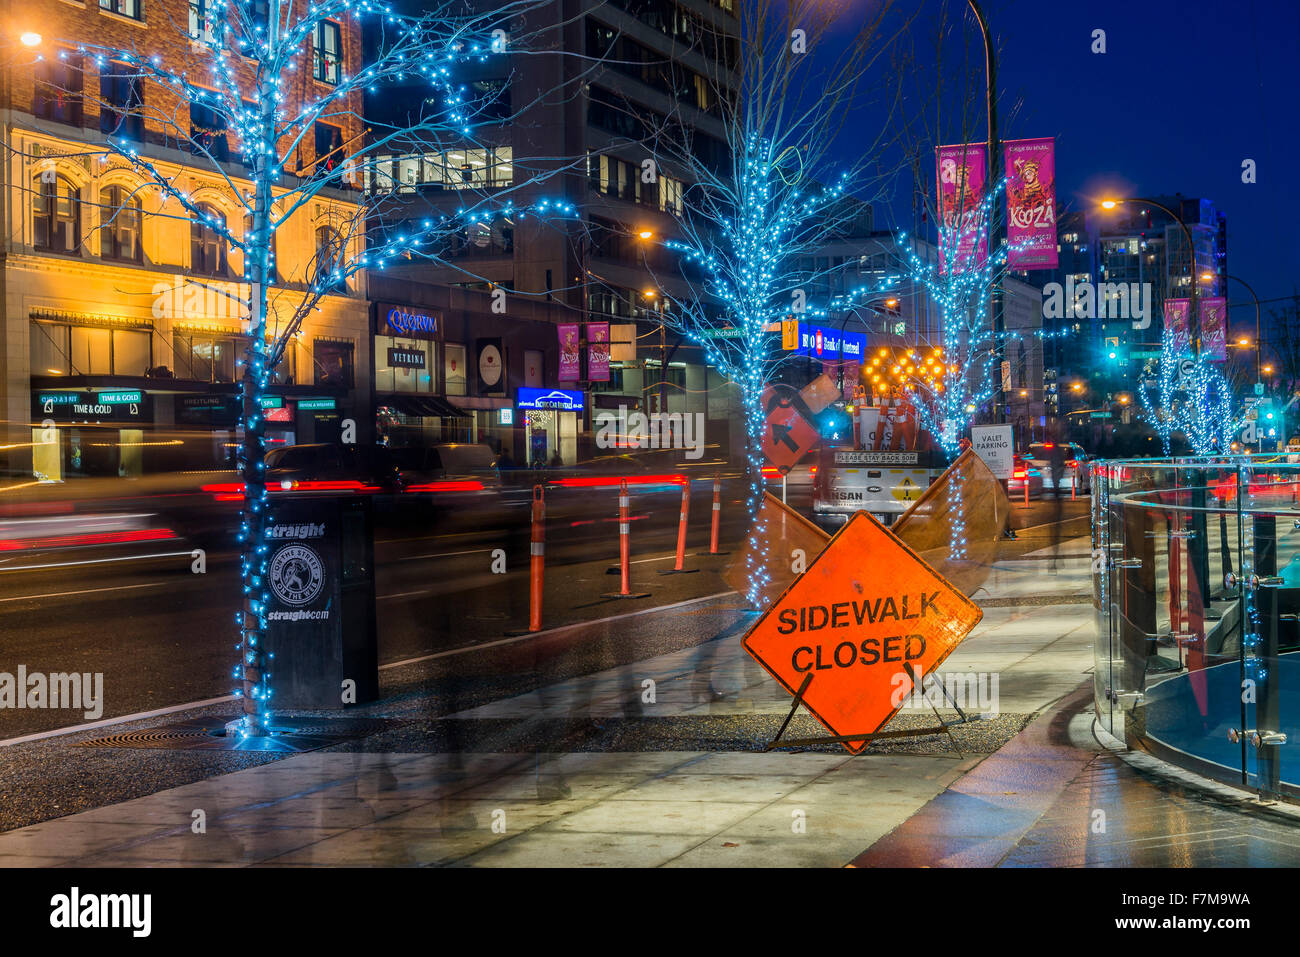 Sidewalk closed sign, Vancouver, British Columbia, Canada, - Stock Image